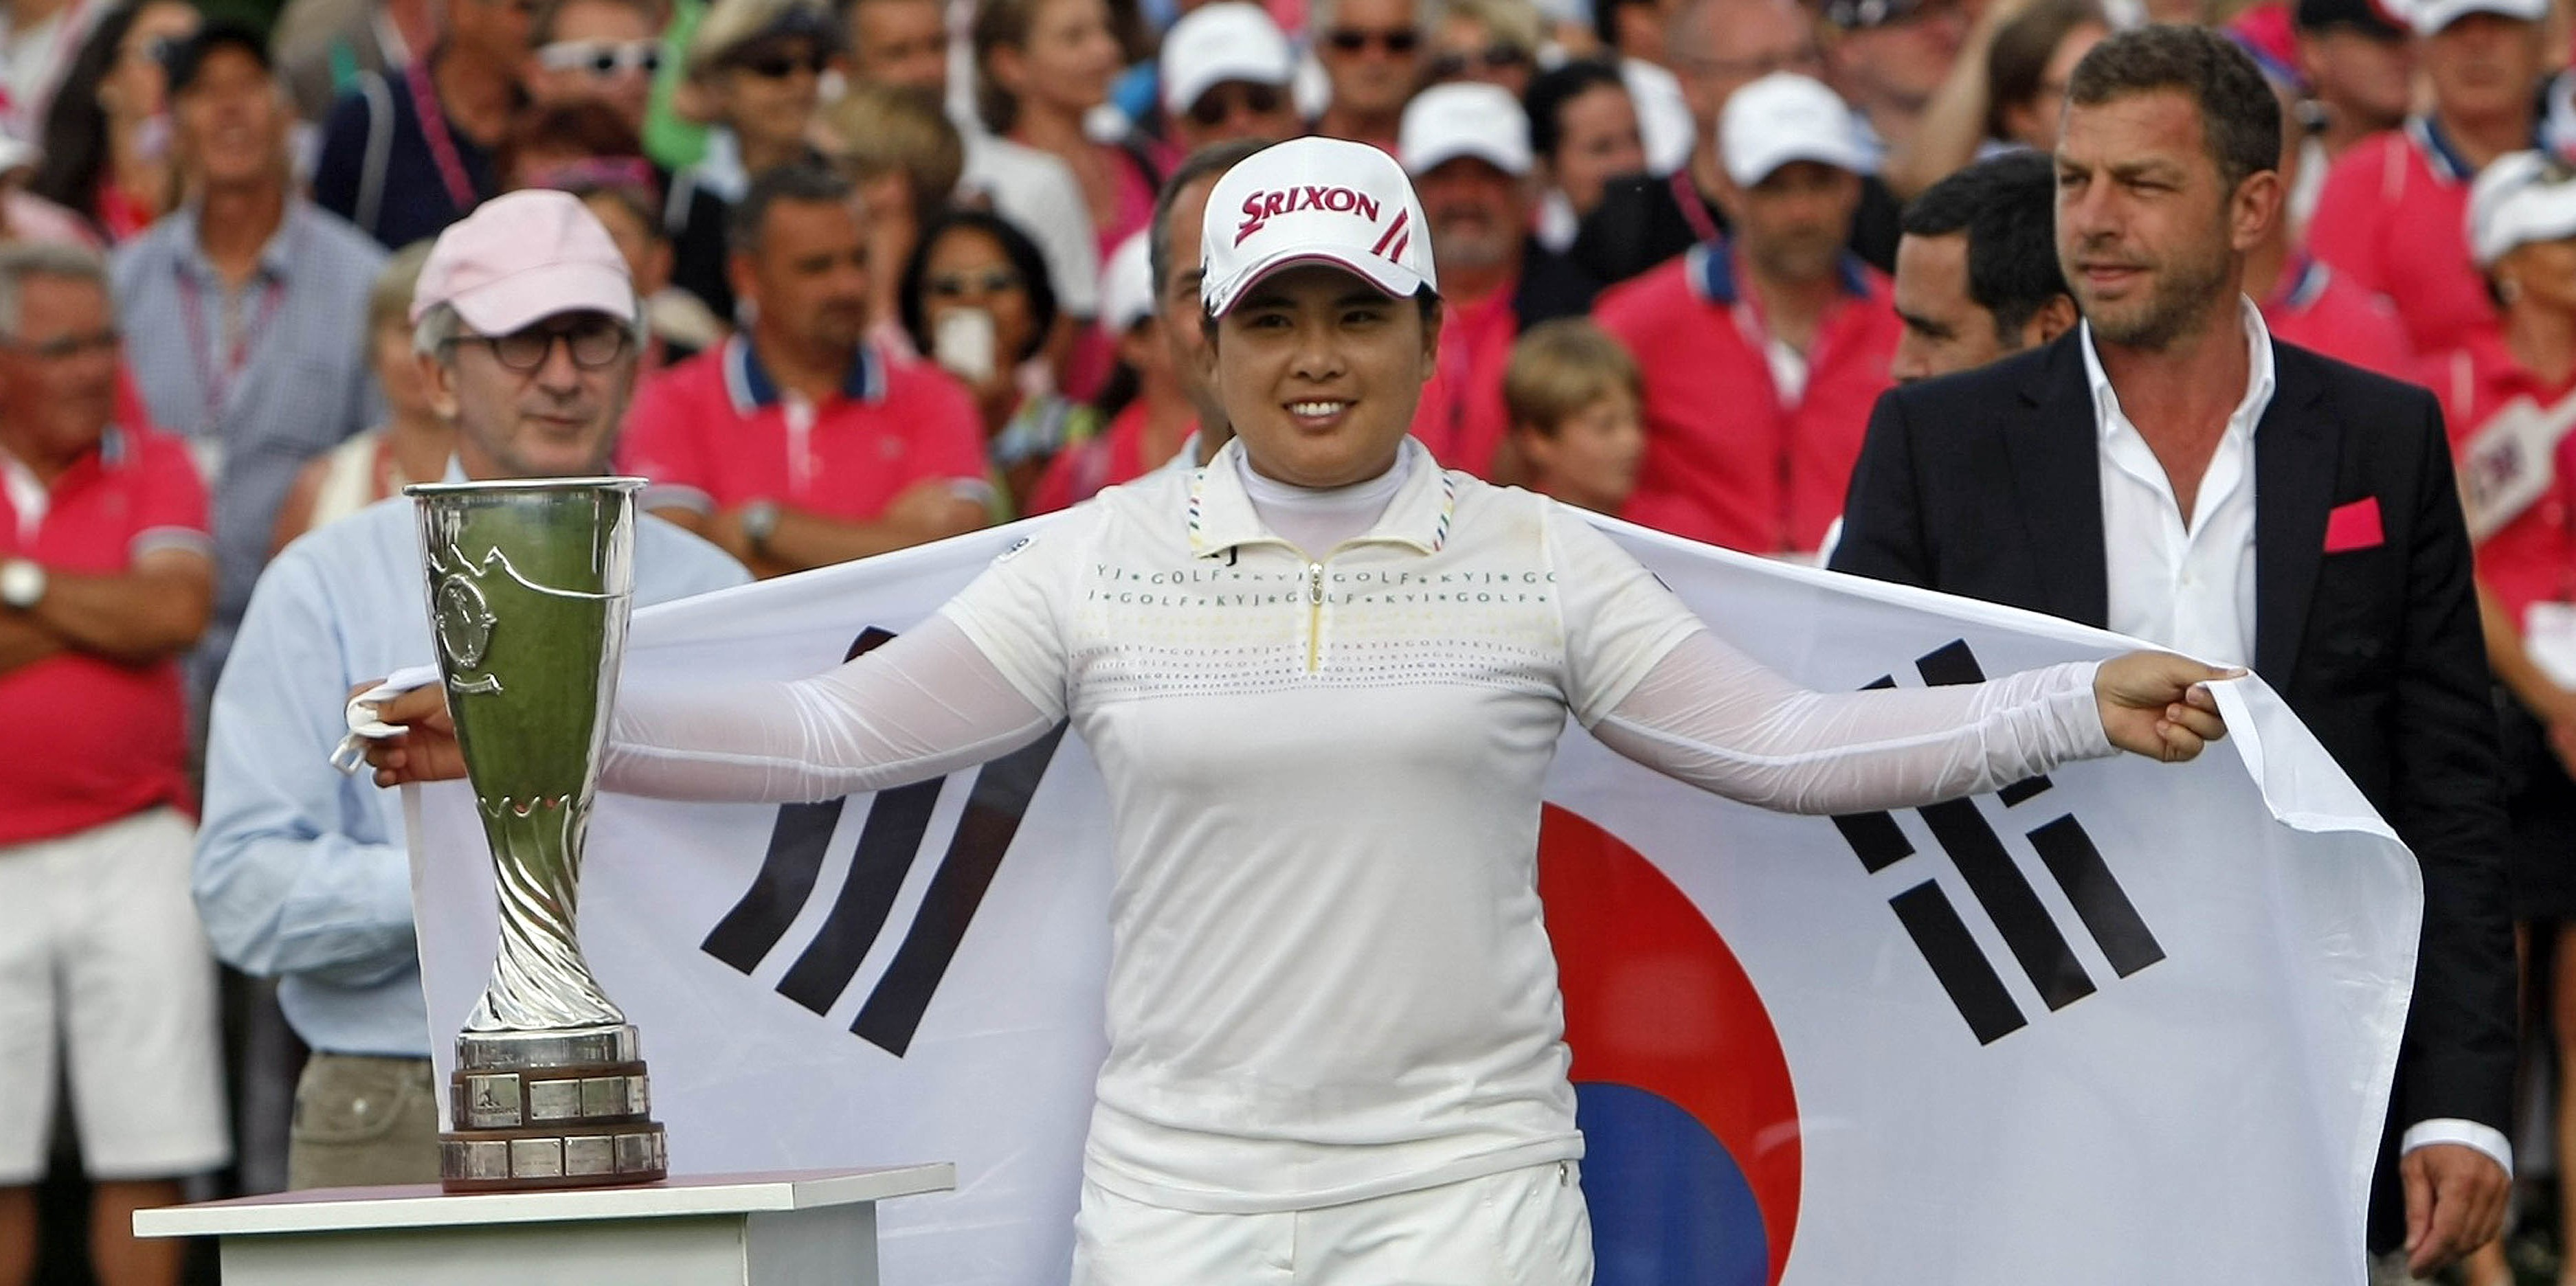 South Korea's Park In-bee holds the South Korean flag as she poses with the trophy after winning the Evian Masters women's golf tournament in Evian, France, Sunday, July 29, 2012.(AP Photo/Claude Paris)